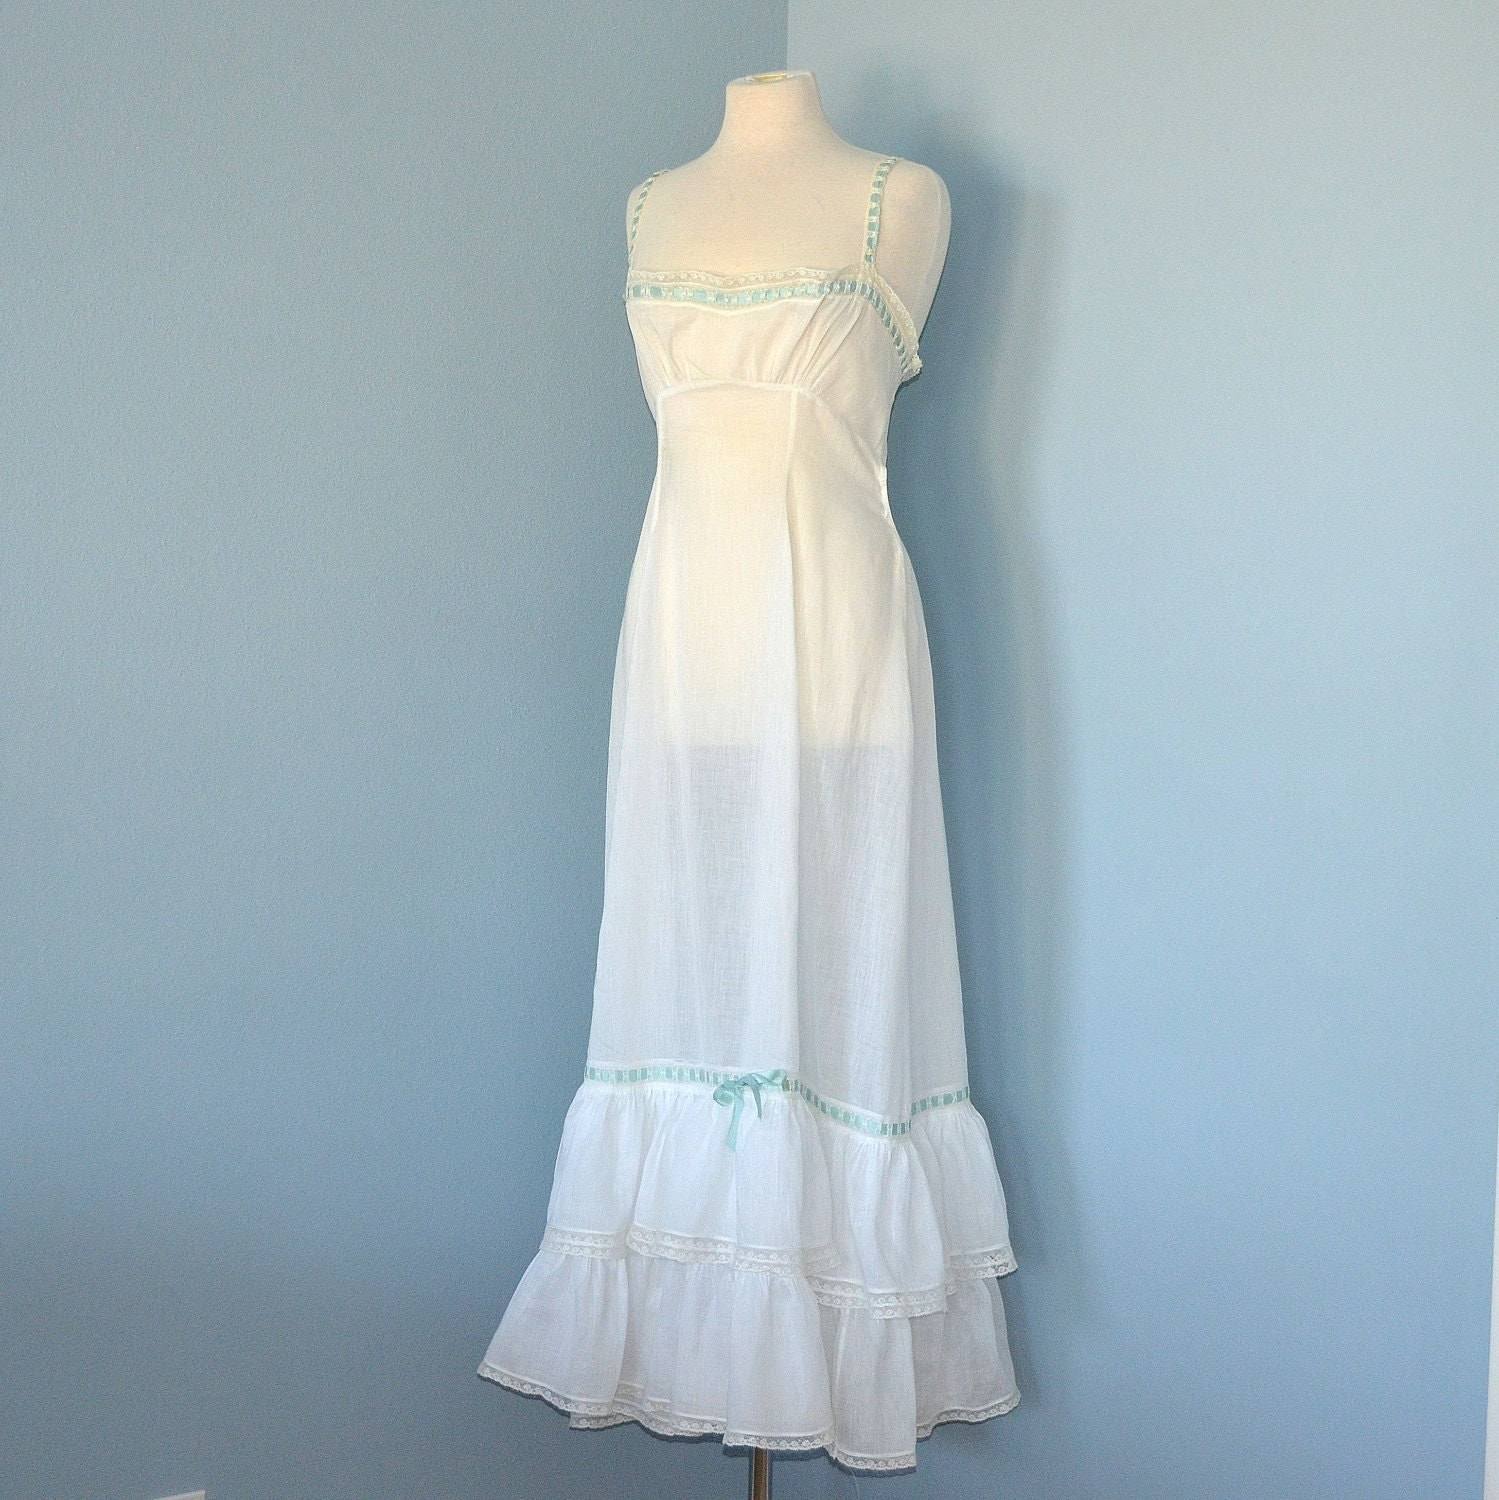 Victorian Nightgown Beautiful Vintage 1910 Era Semi Sheer